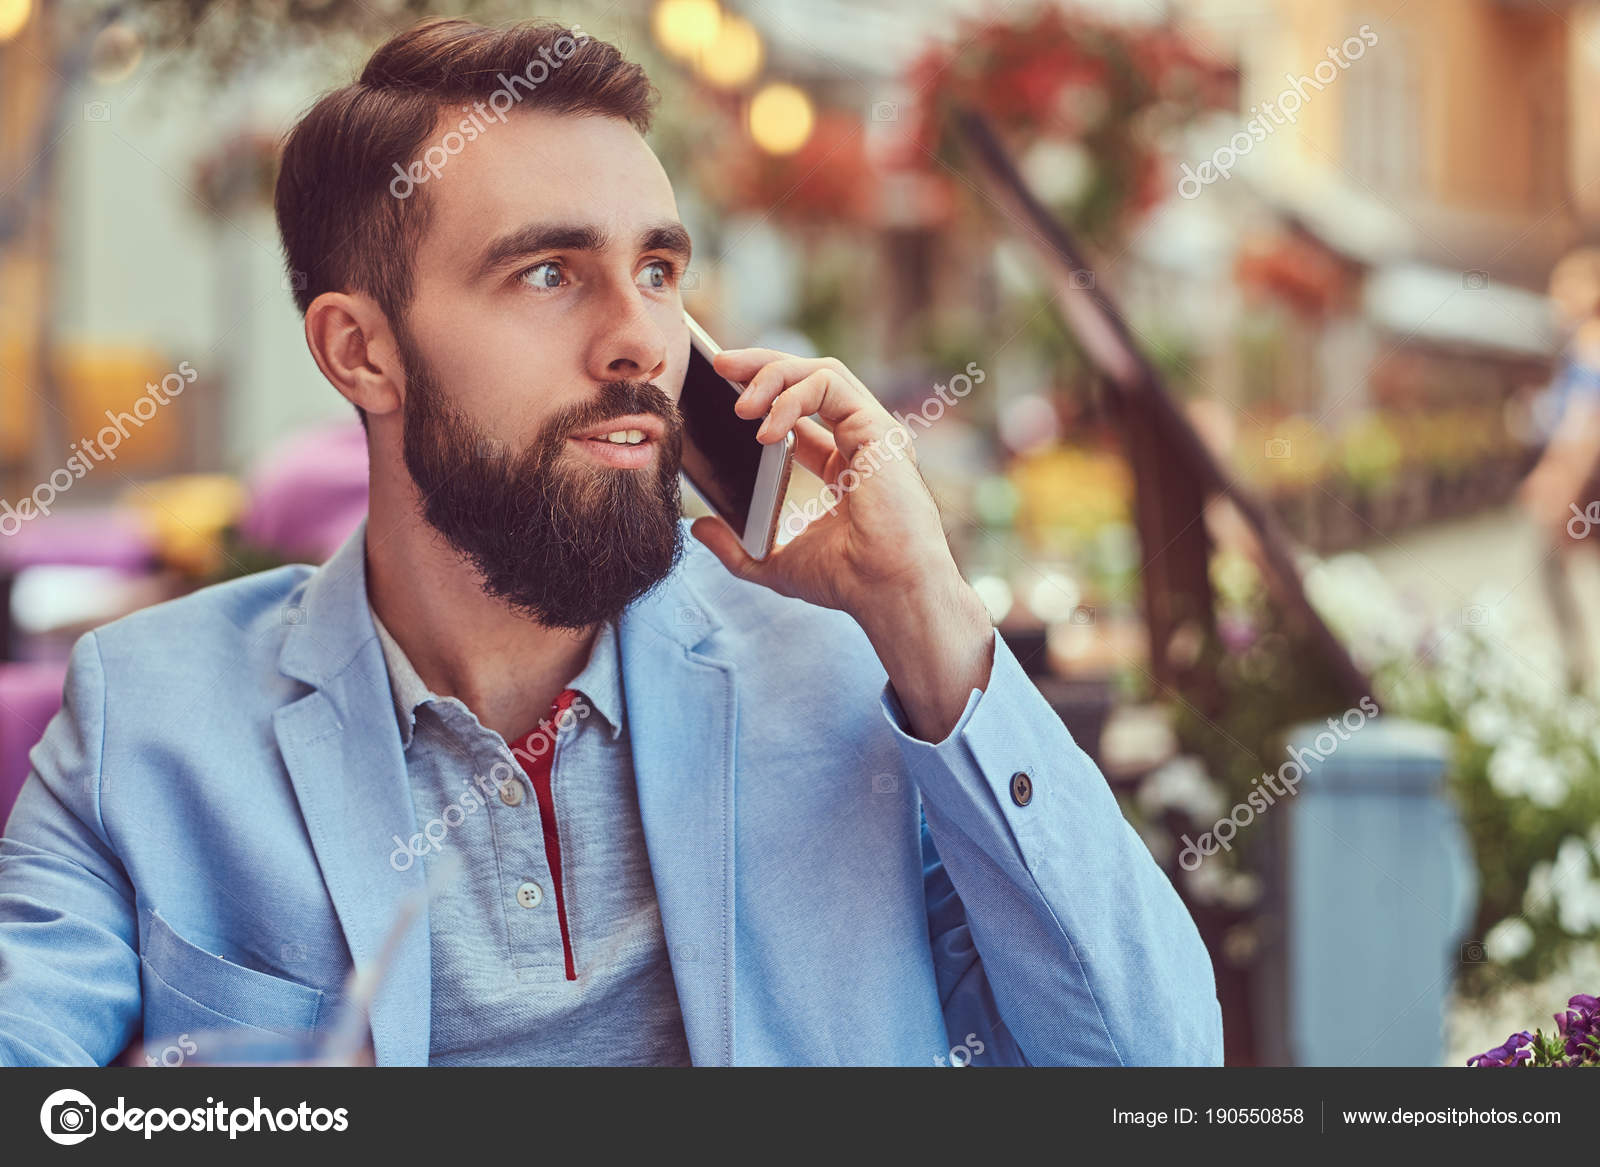 Close Up Portrait Of A Fashionable Bearded Businessman With A